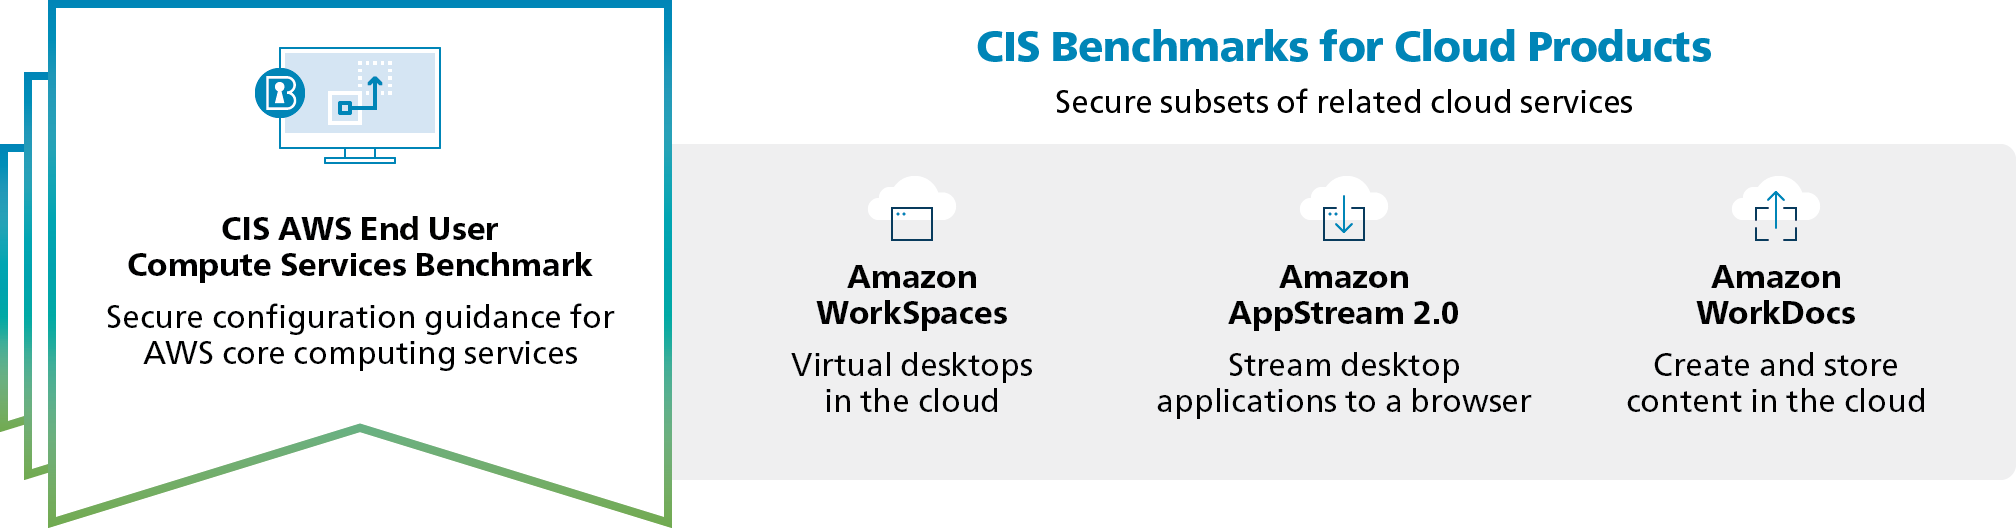 CIS-AWS_End_User_Compute_Services_Benchmarks-Cloud_Products.png